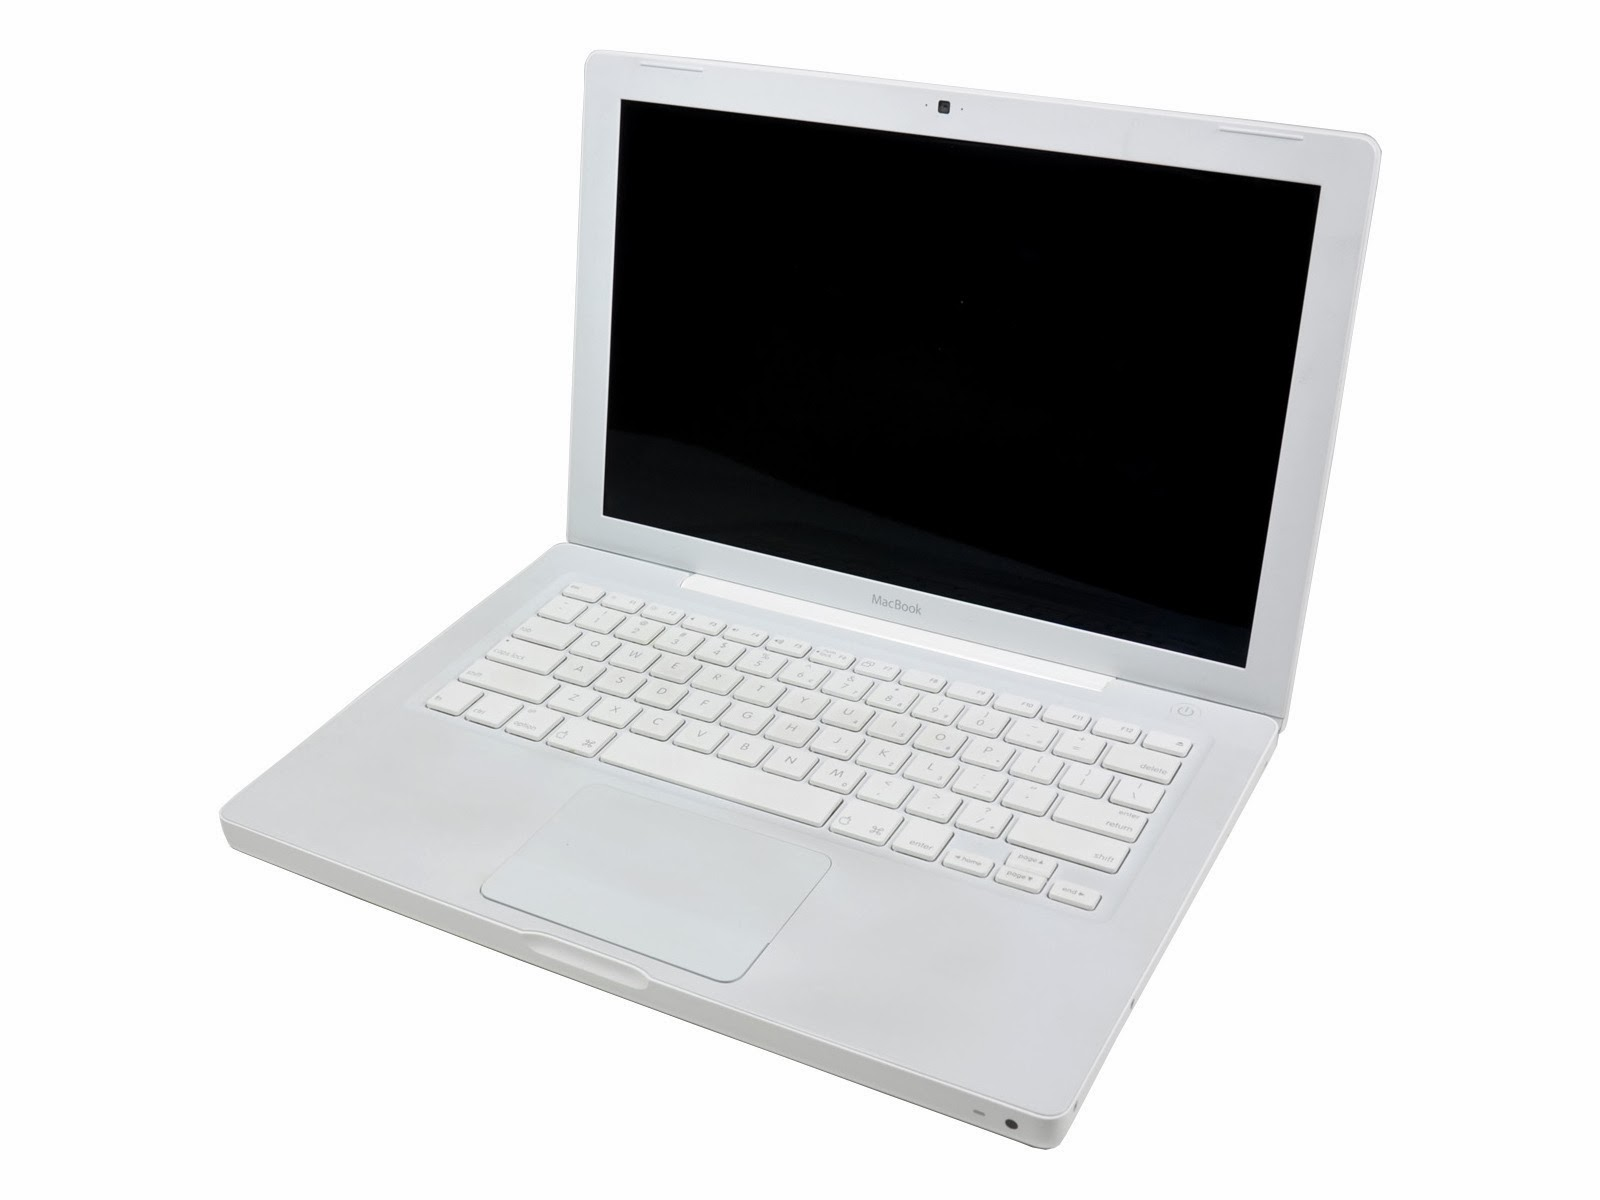 Apple Macbook A1181 K36c Lmb Macbook White 13inch Laptop